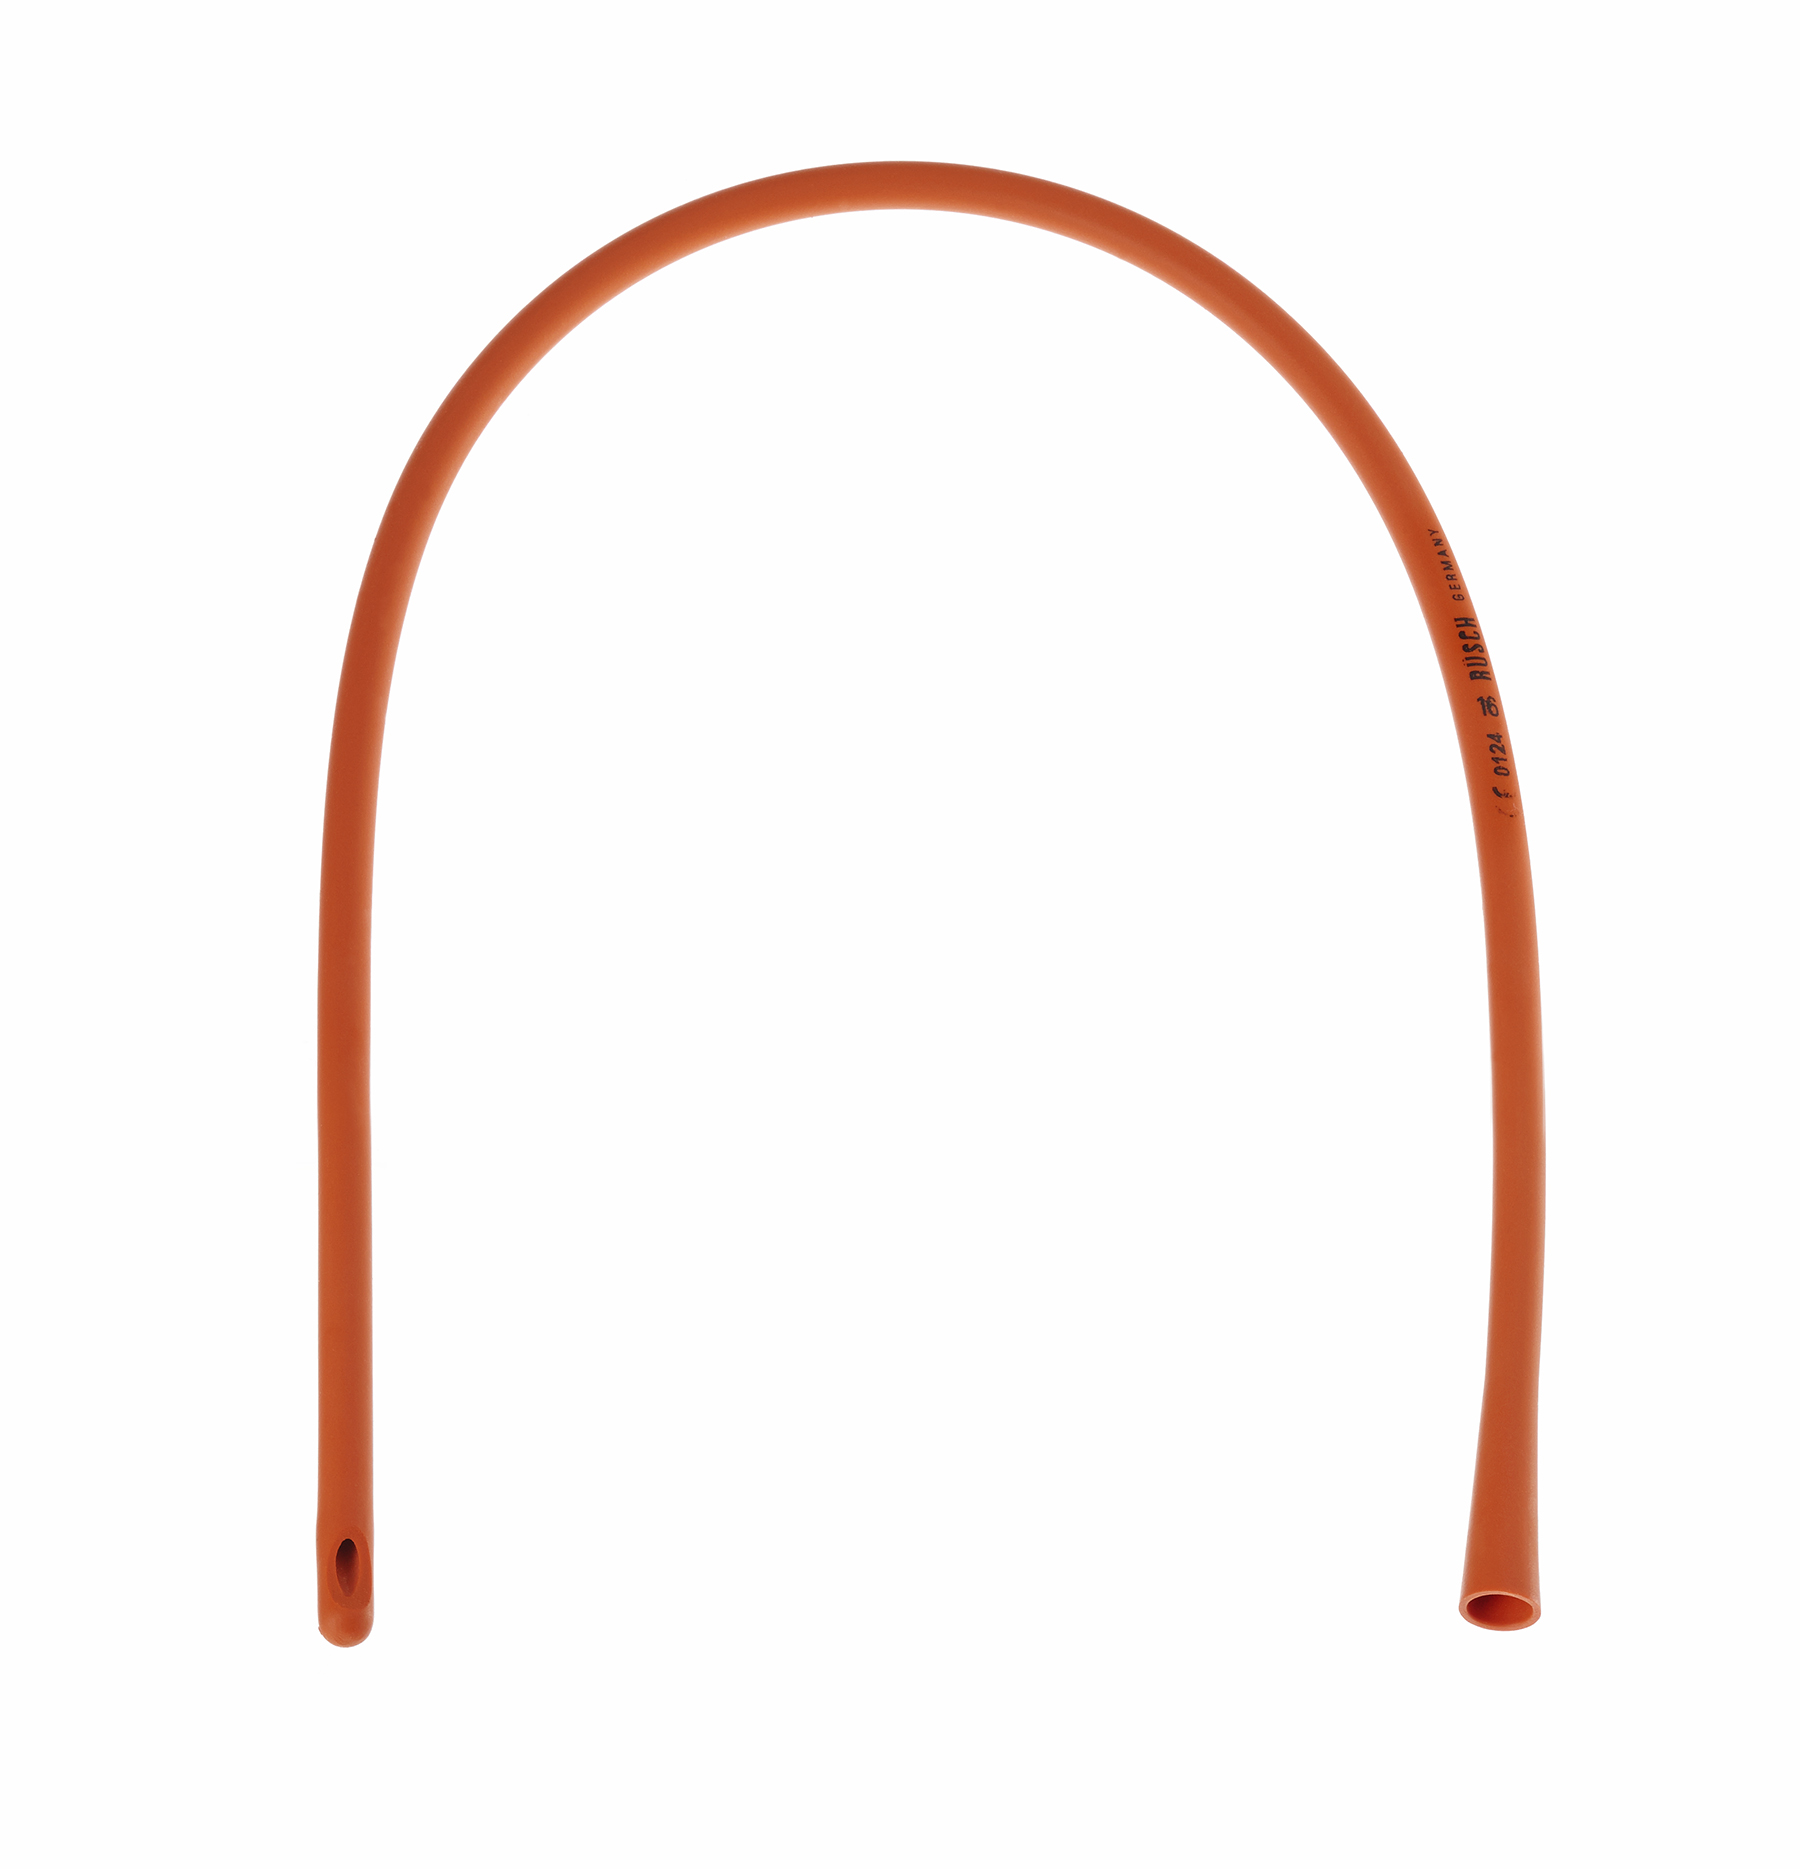 Rusch Red Rubber Latex Intermittent Catheters